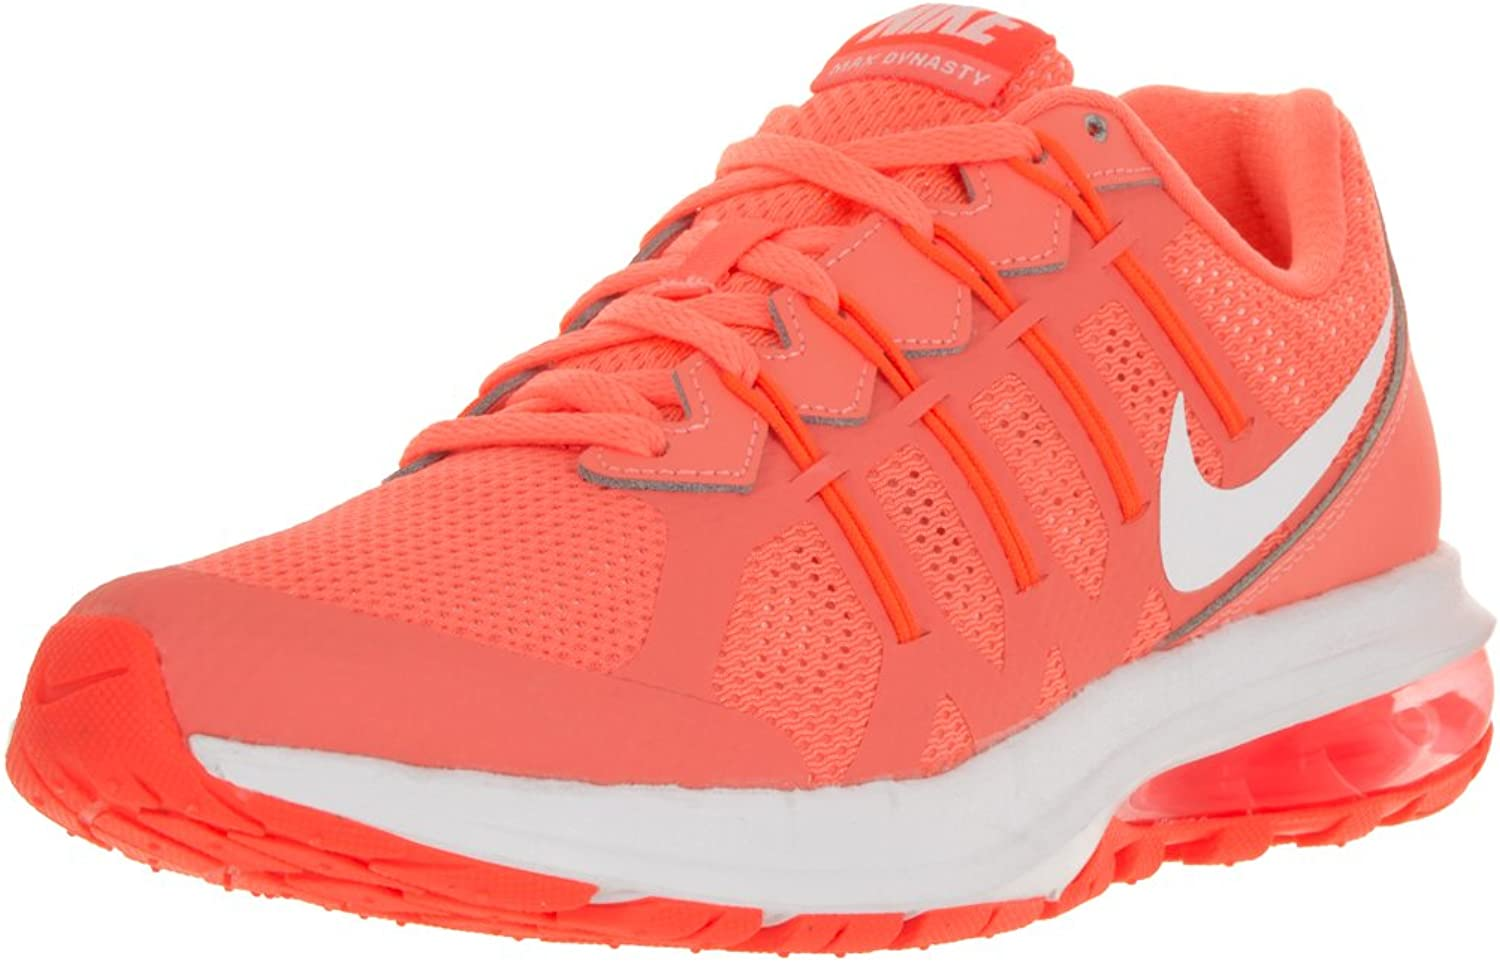 Nike Damen WMNS Air Max Dynasty Laufschuhe, UK